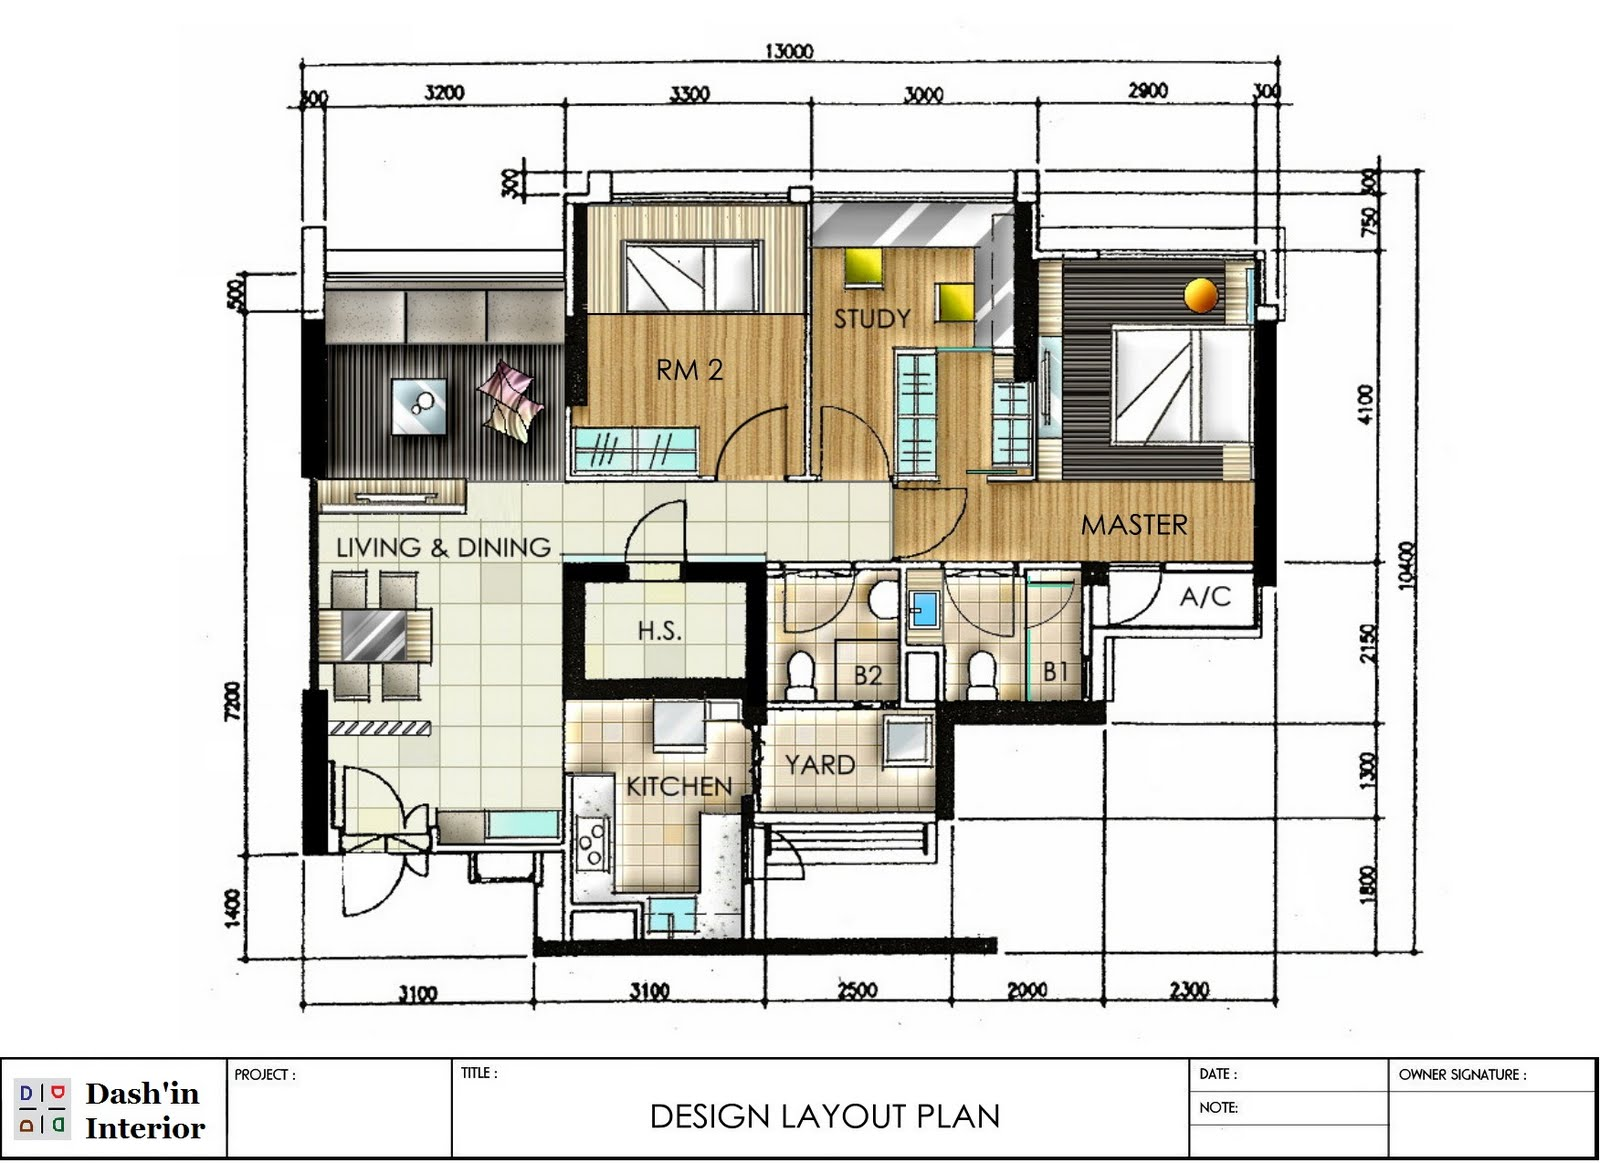 Dash 39 in interior hand drawn designs floor plan layout for Interior design layout tool